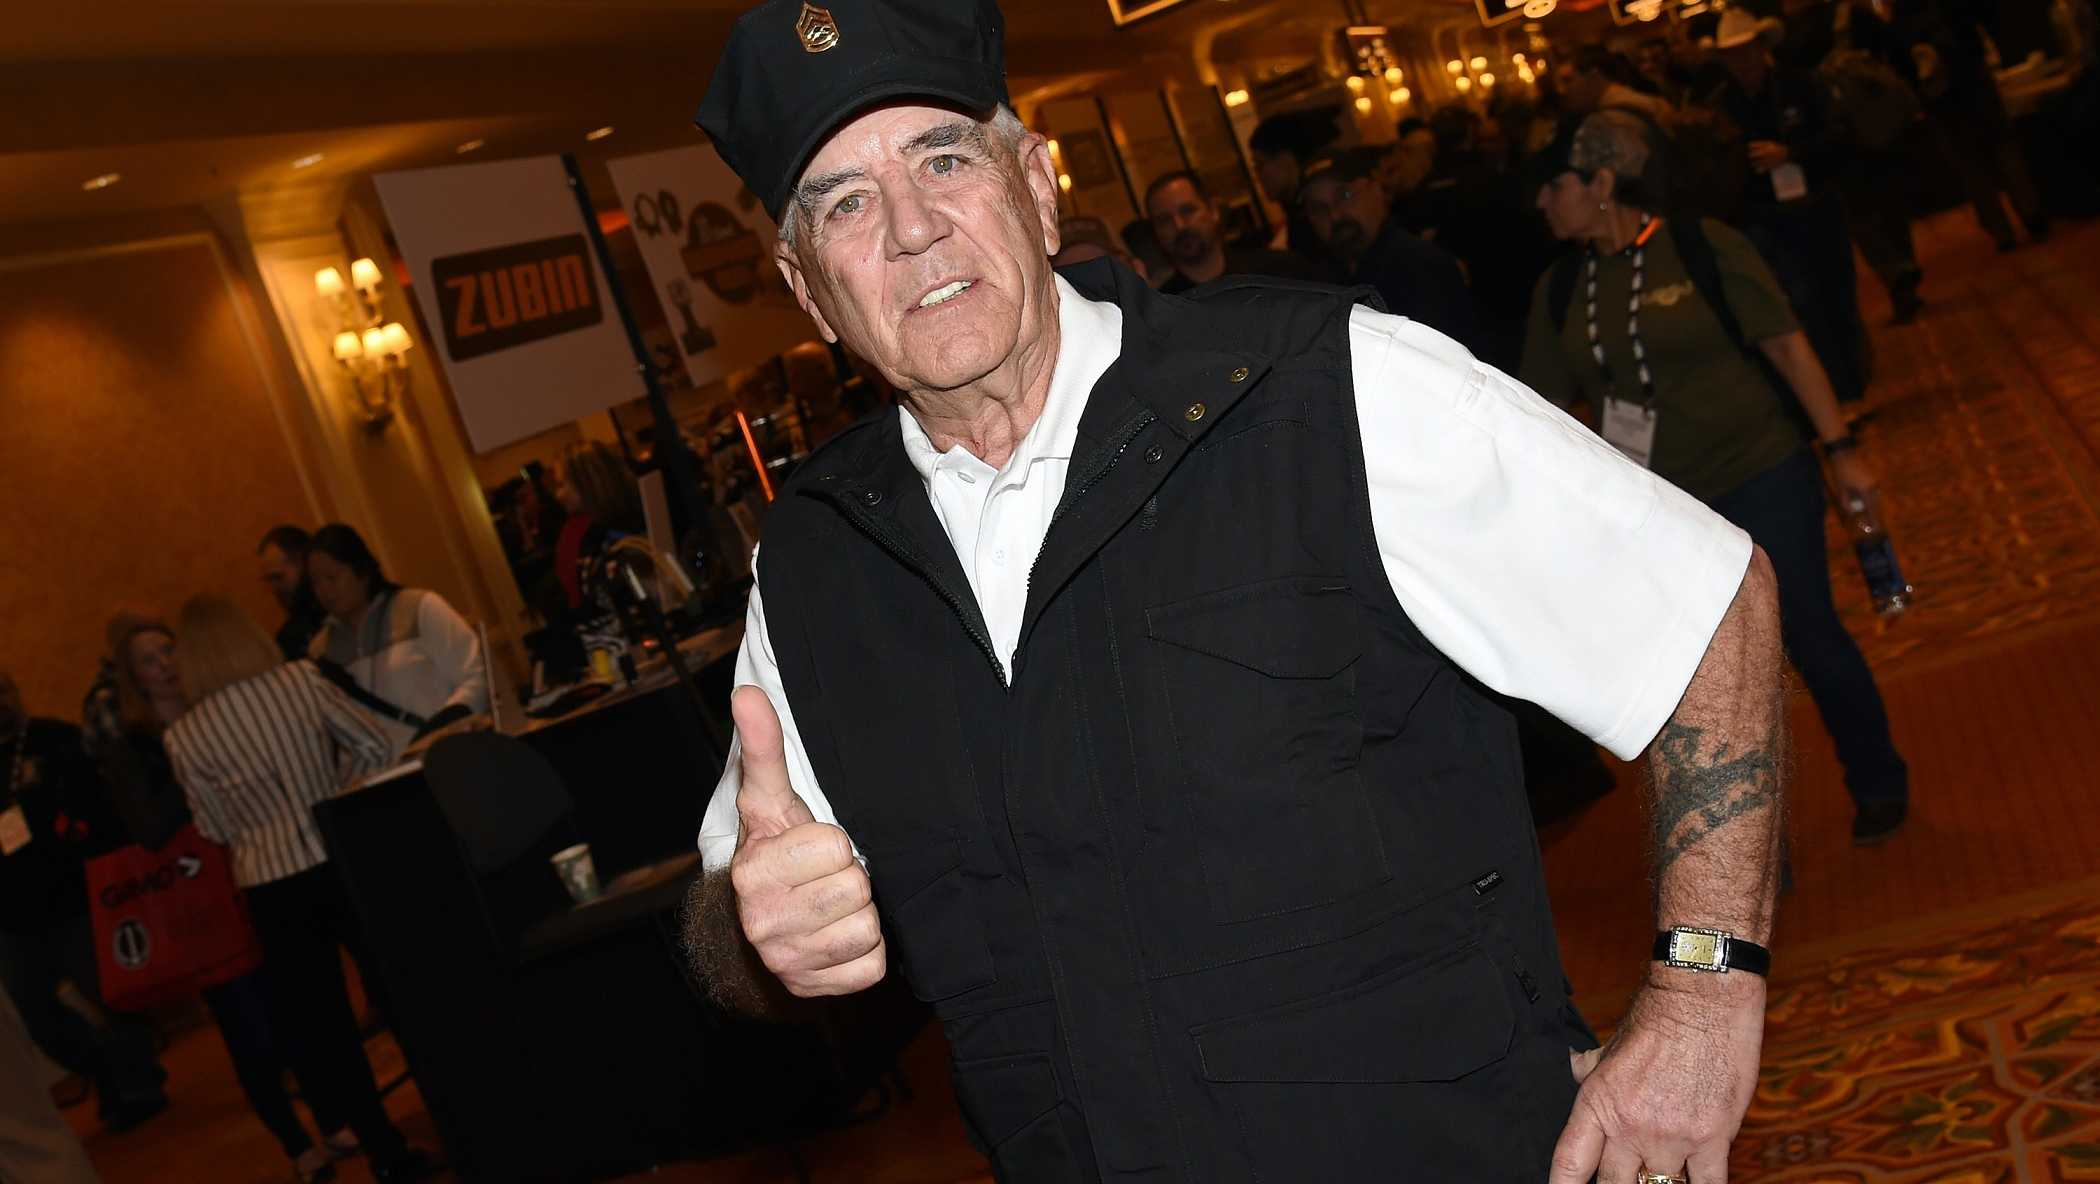 R. Lee Ermey attends the 2016 National Shooting Sports Foundation's Shooting, Hunting, Outdoor Trade (SHOT) Show on January 19, 2016 in Las Vegas, Nevada.